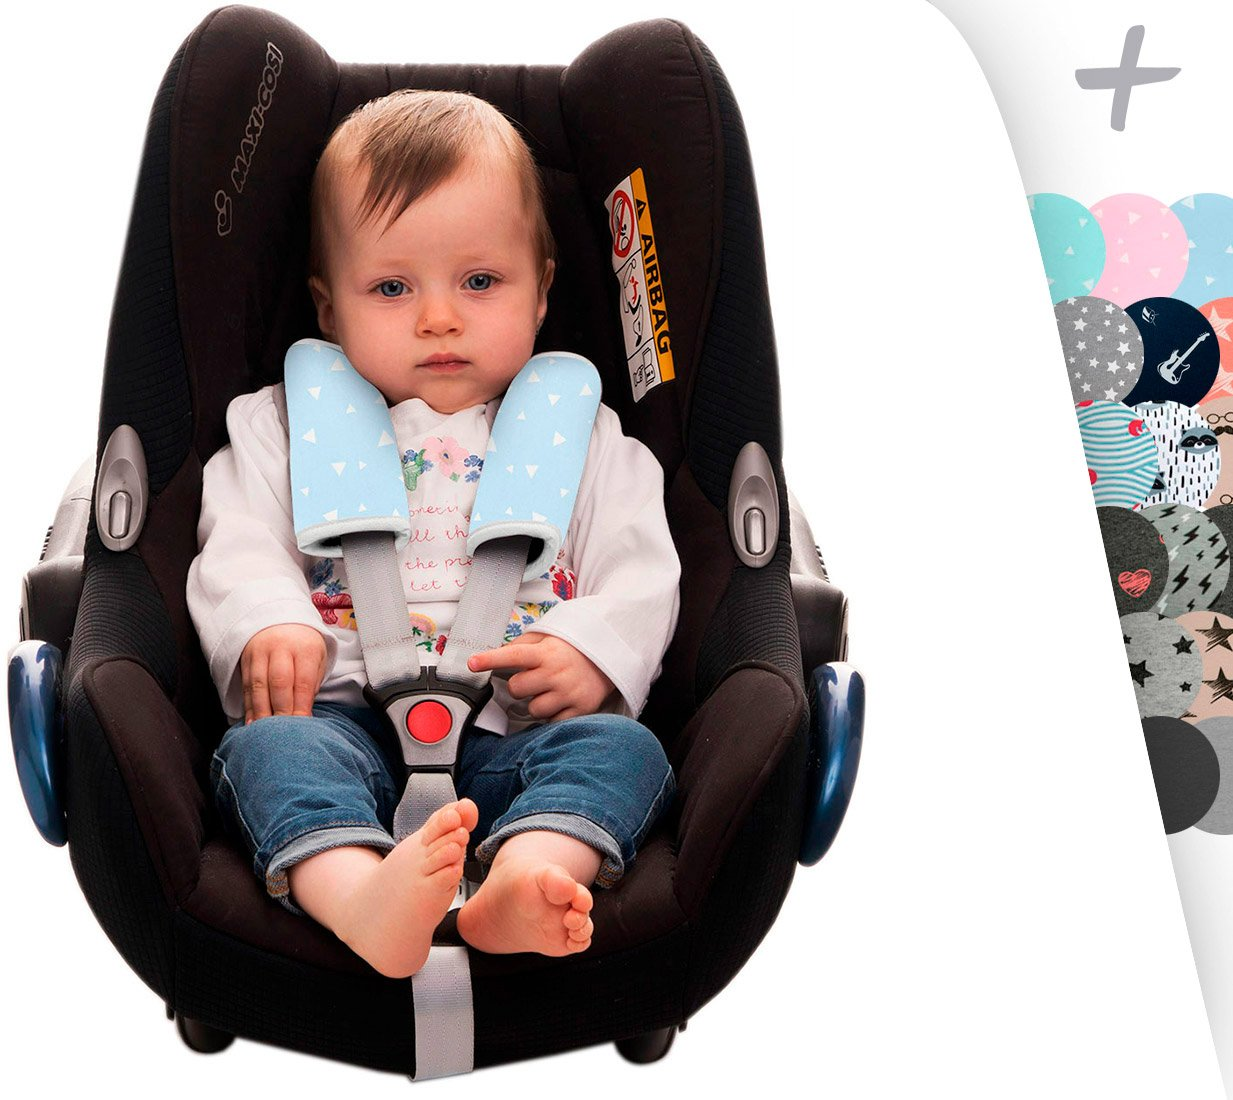 Harness Protector for Stroller, Maxi COSI and Car Seat Janabebe (Crabby, 17 X 18) CY/F06/020/100